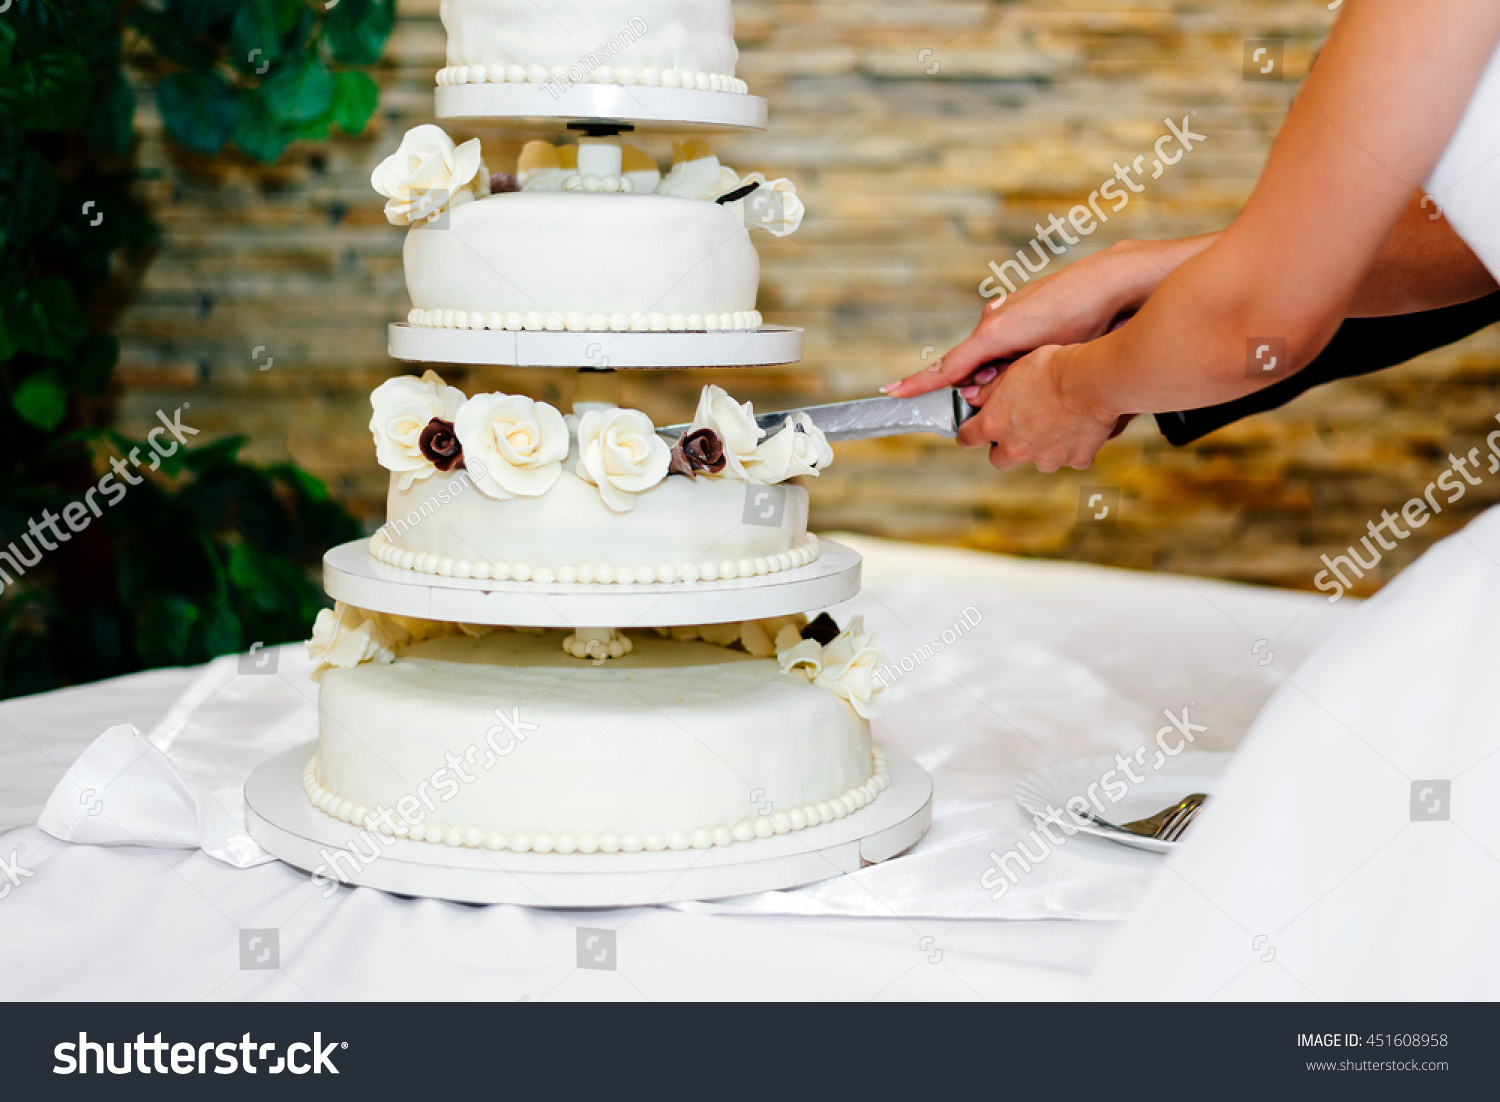 Unique When To Cut Wedding Cake At The Reception Photos